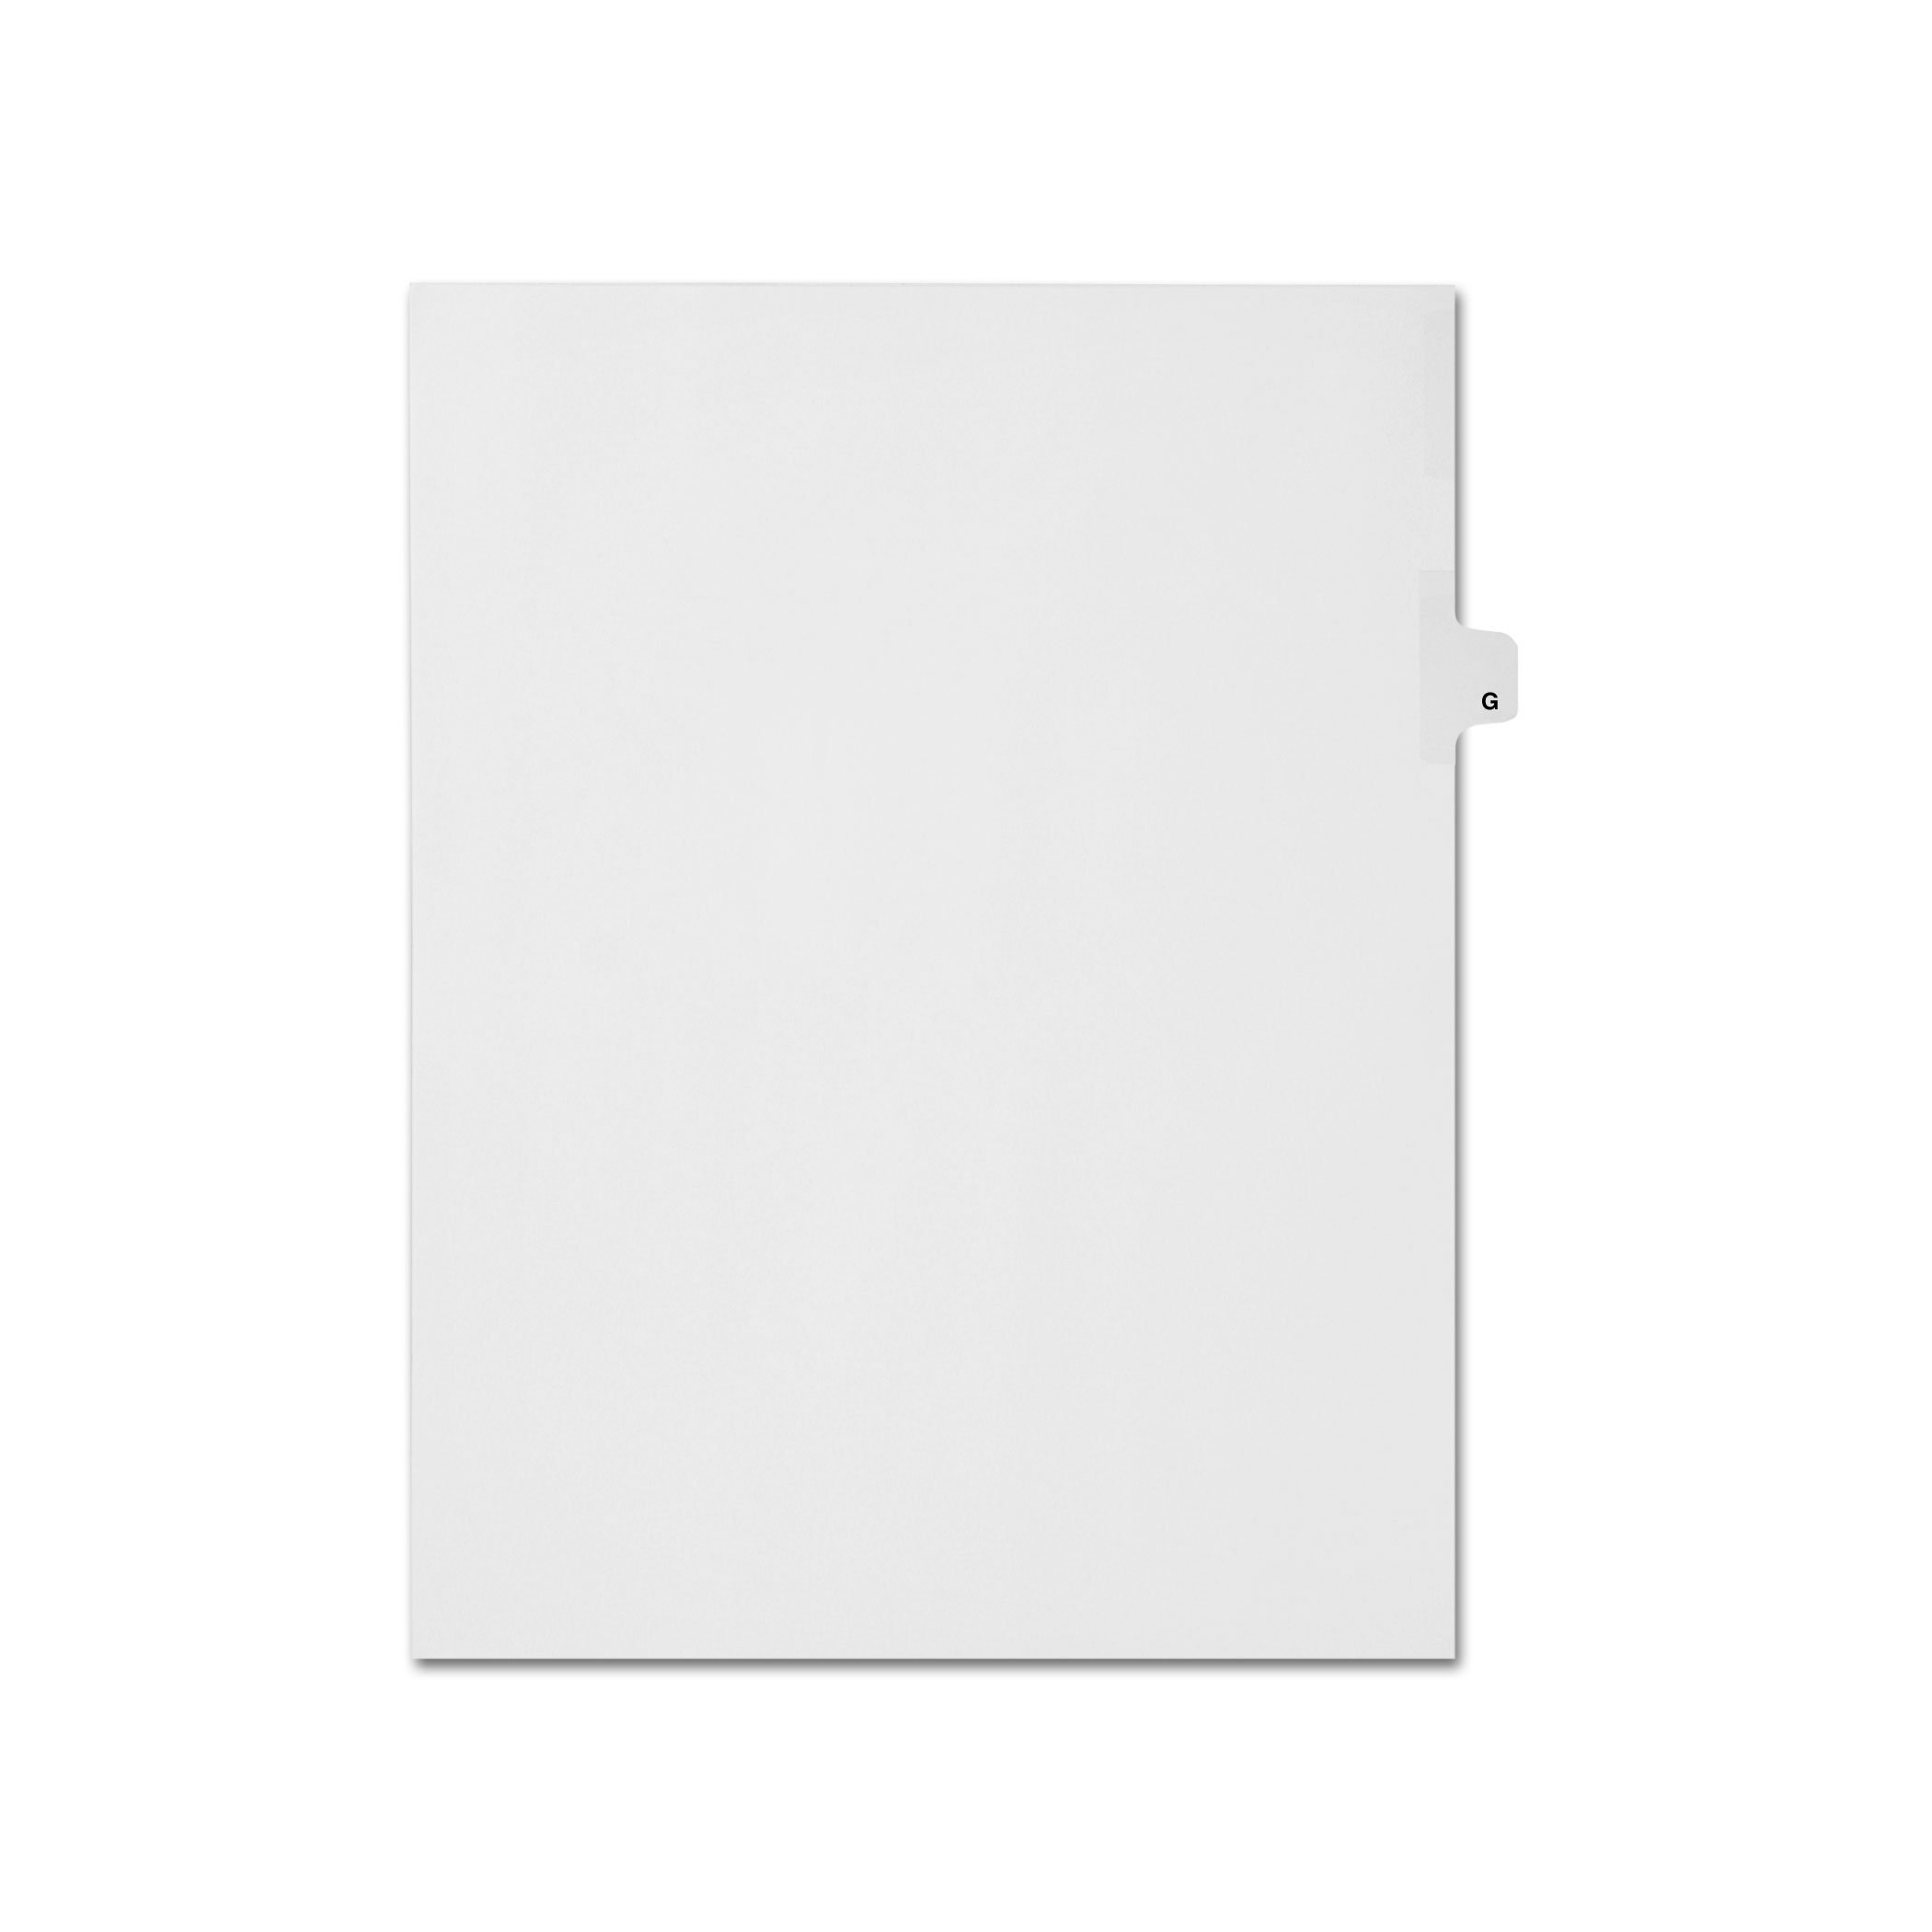 AMZfiling Individual Legal Index Tab Dividers, Compatible with Avery- Printed G, Letter Size, White, Side Tabs, Position 7 (25 Sheets/pkg)